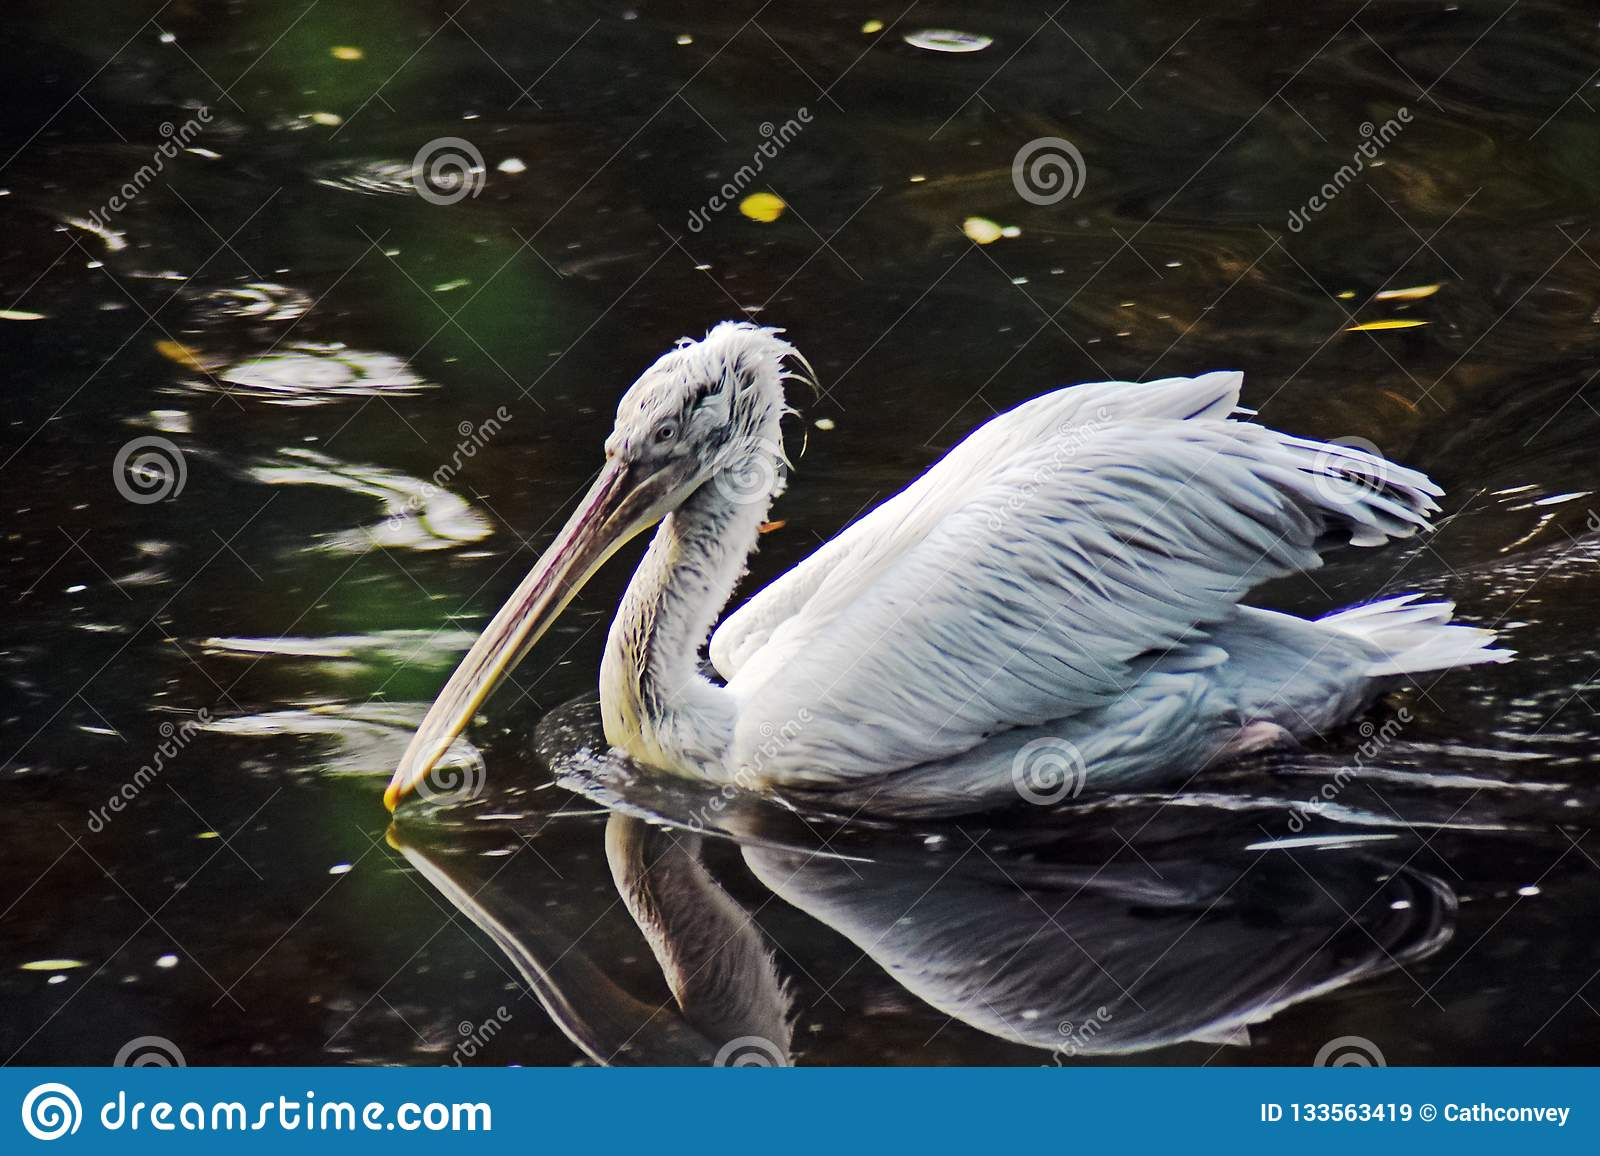 White pelican on water and its reflection